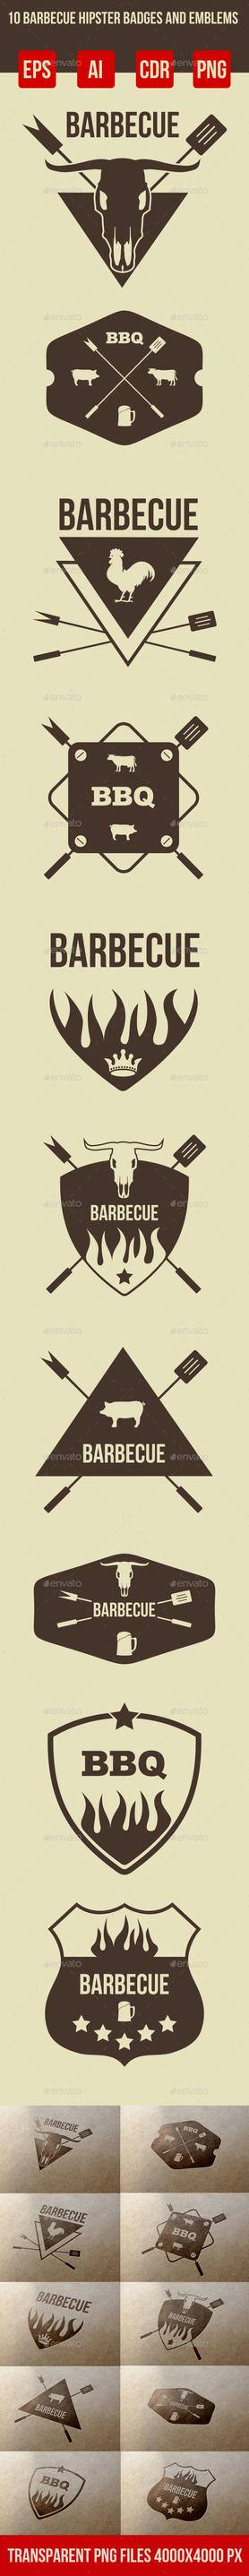 10 Barbeque Hipster Vector Emblems Vol.3 by petyaivanova